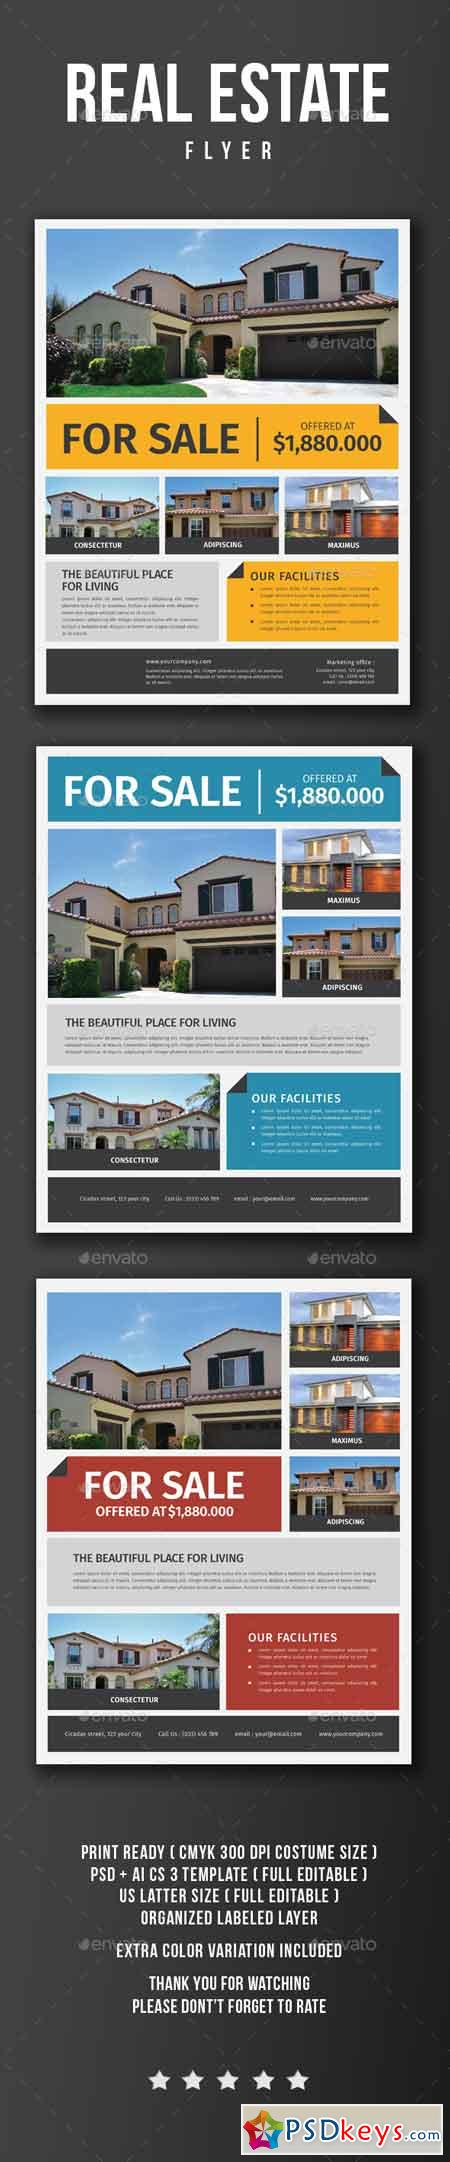 Real Estate Flyer 17026682